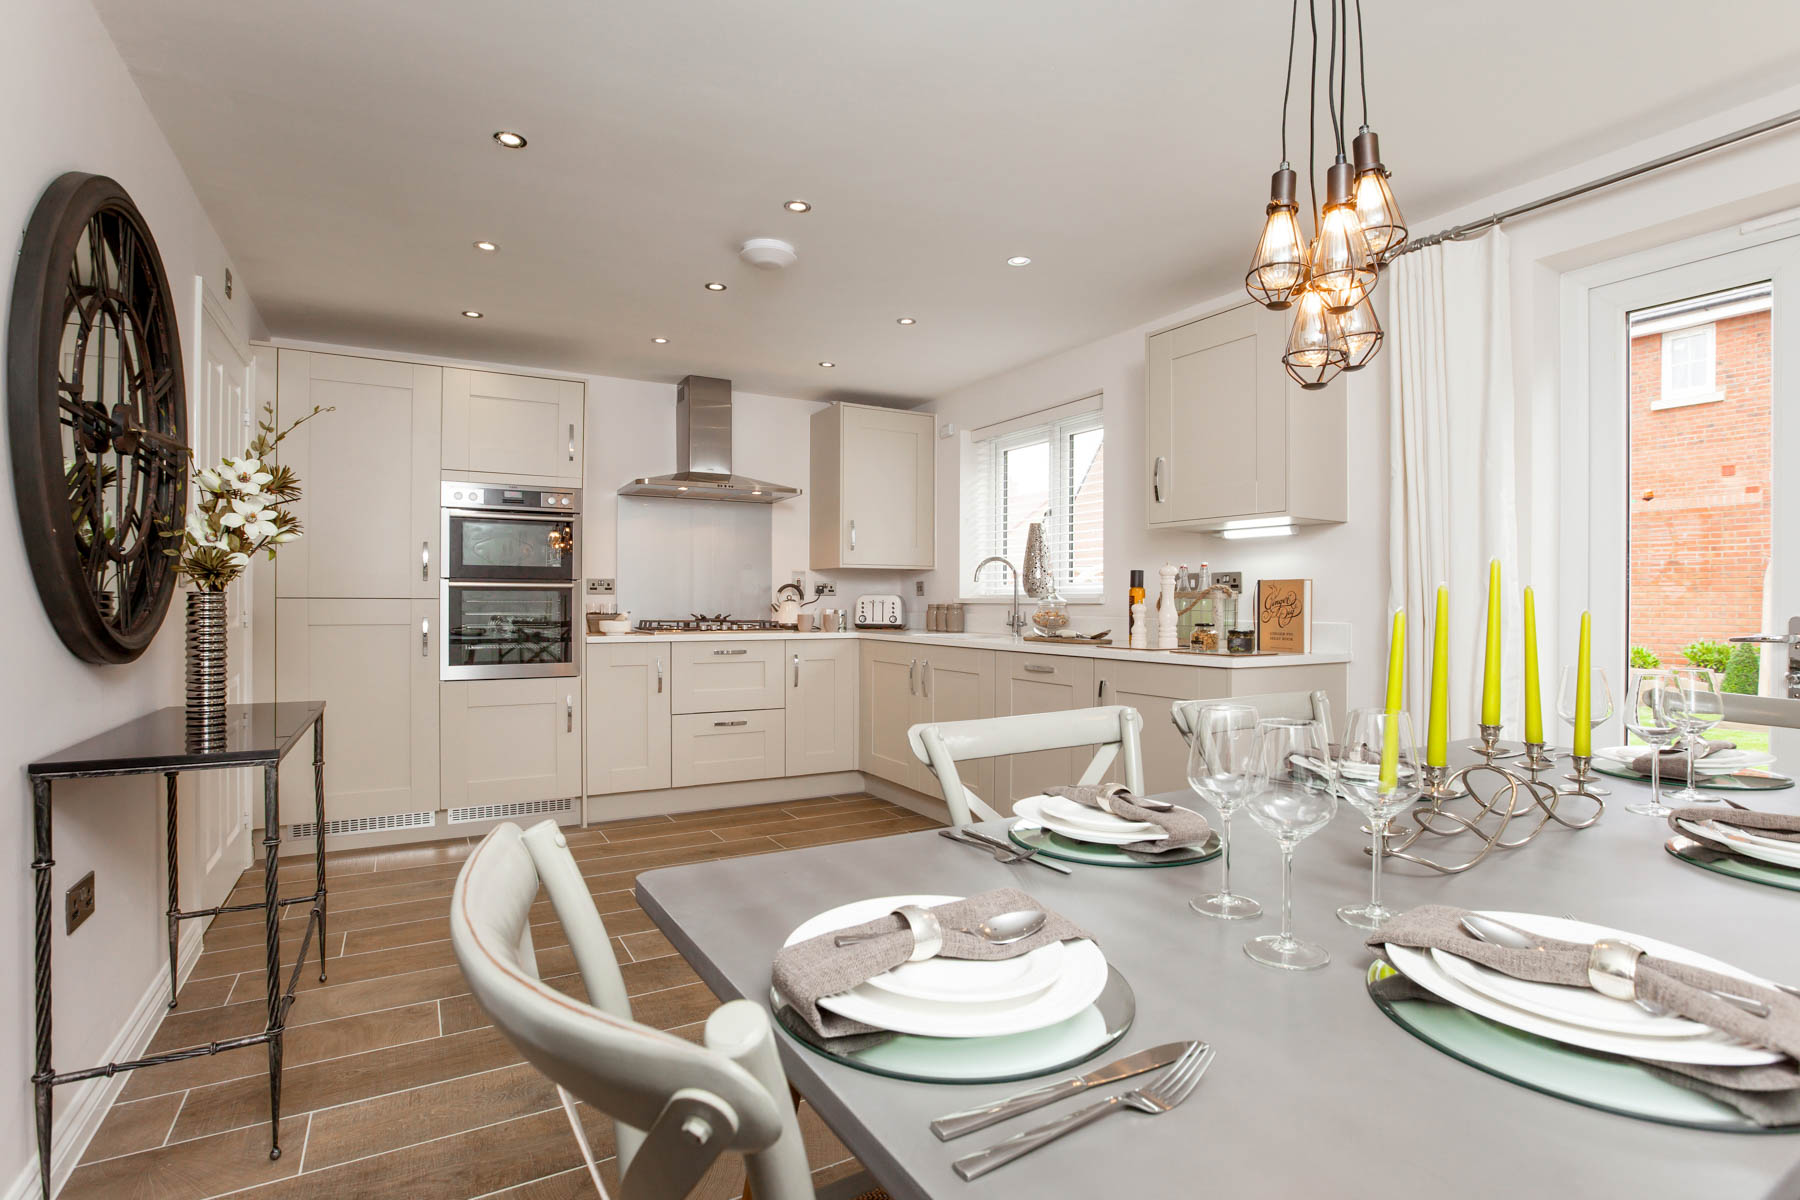 TW Exeter - Mayfield Gardens - Coming soon image 1